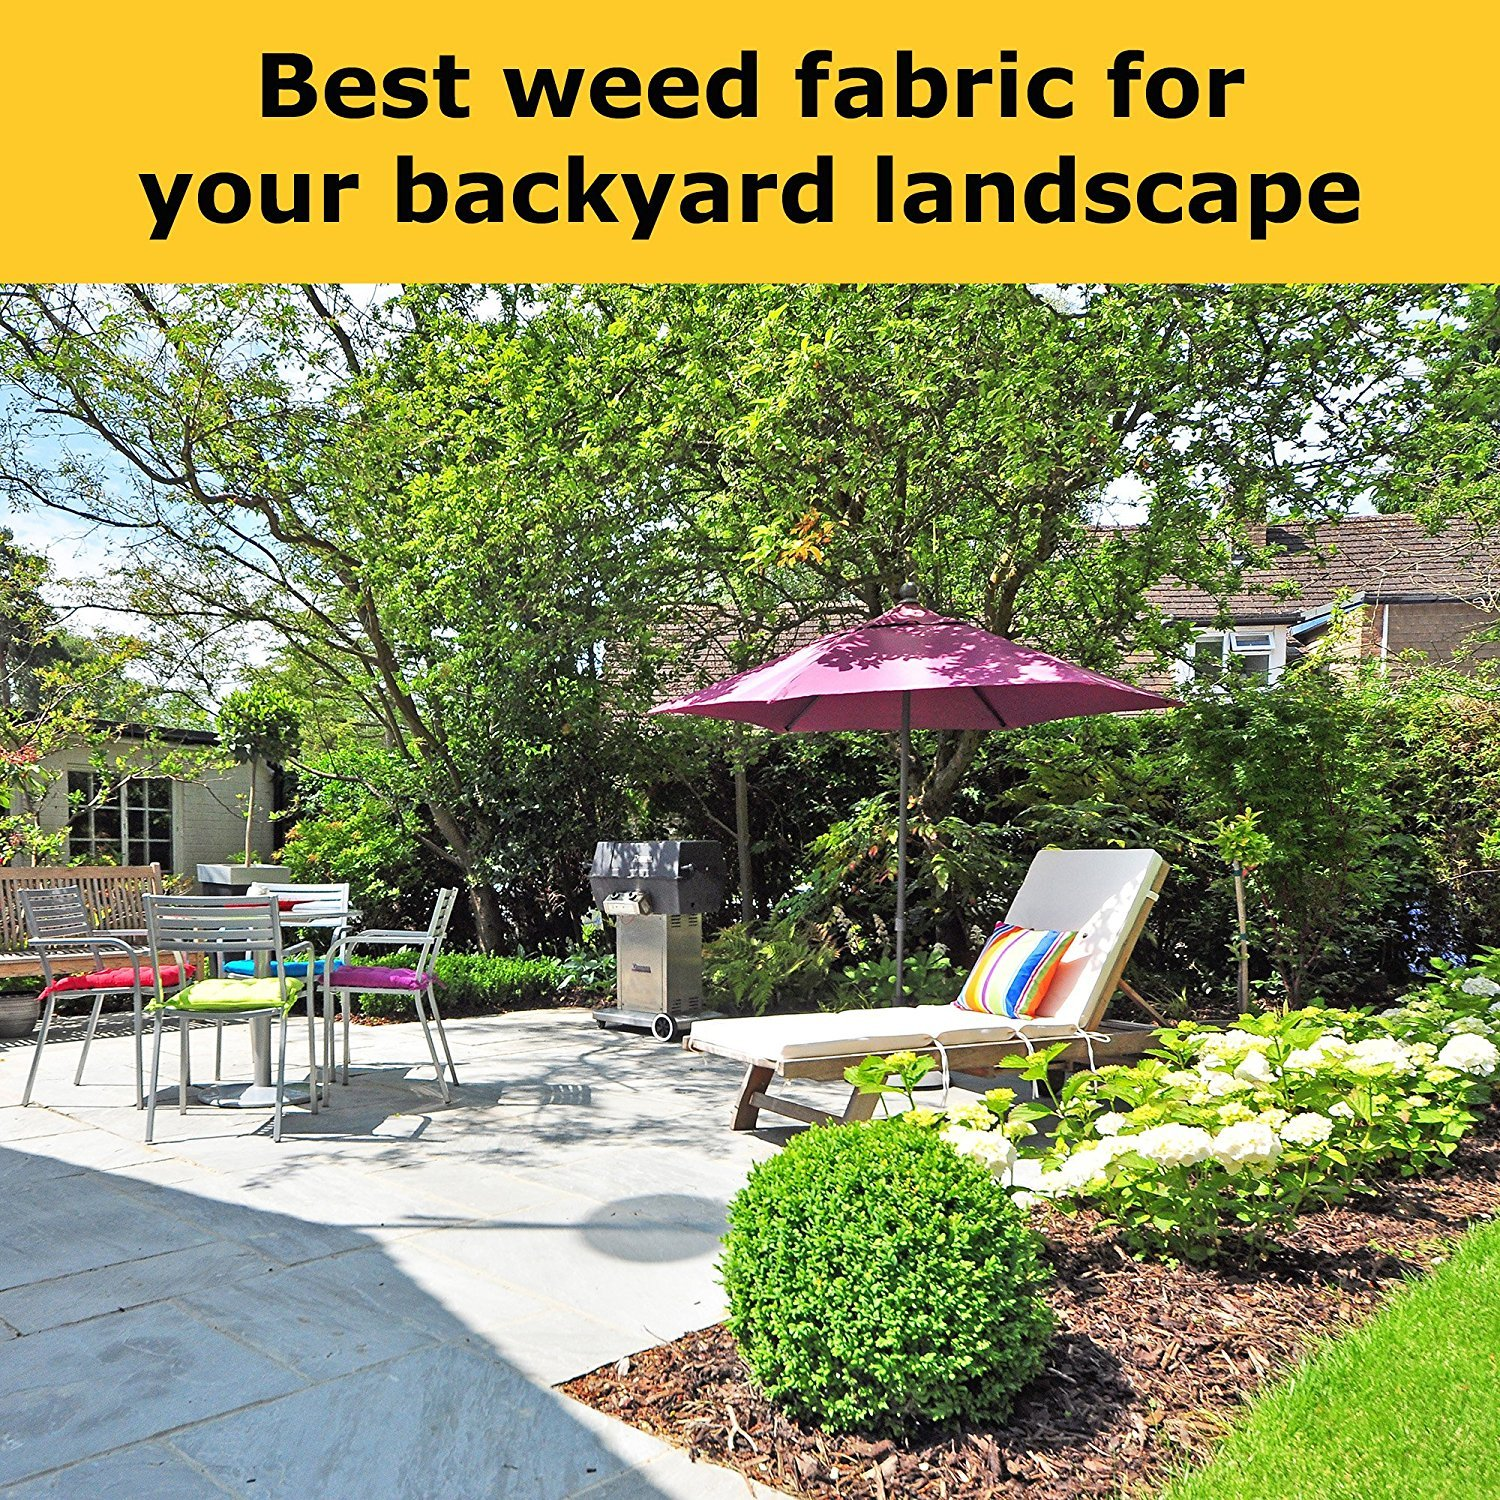 Pro 5 Ounce Weed Barrier - Weed Control Landscape Fabric - Woven Geotextile Fabric - Erosion Control Mulch Mat - Garden Ground Cover Fabric - 6Ft X 250Ft Black by UNI-SOURCE-TEXTILE (Image #3)